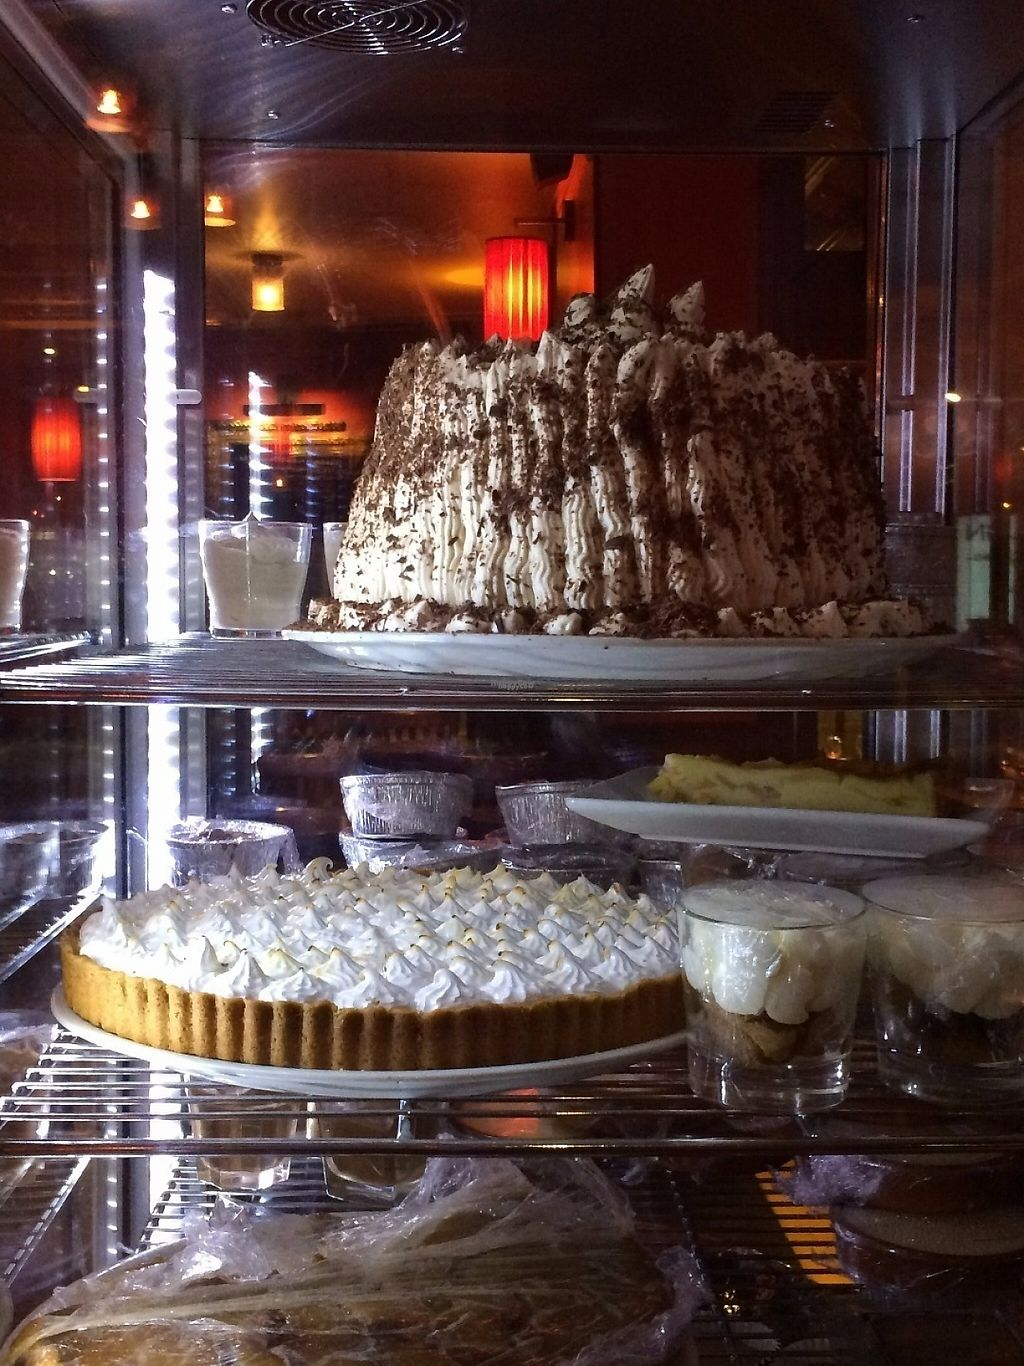 """Photo of L'Apollinaire  by <a href=""""/members/profile/LisaCupcake"""">LisaCupcake</a> <br/>A gigantic vegan black forest cake (chocolate and berries) and vegan lemon meringue pie, waiting for us in the restaurant's dessert case <br/> November 22, 2016  - <a href='/contact/abuse/image/83063/193221'>Report</a>"""